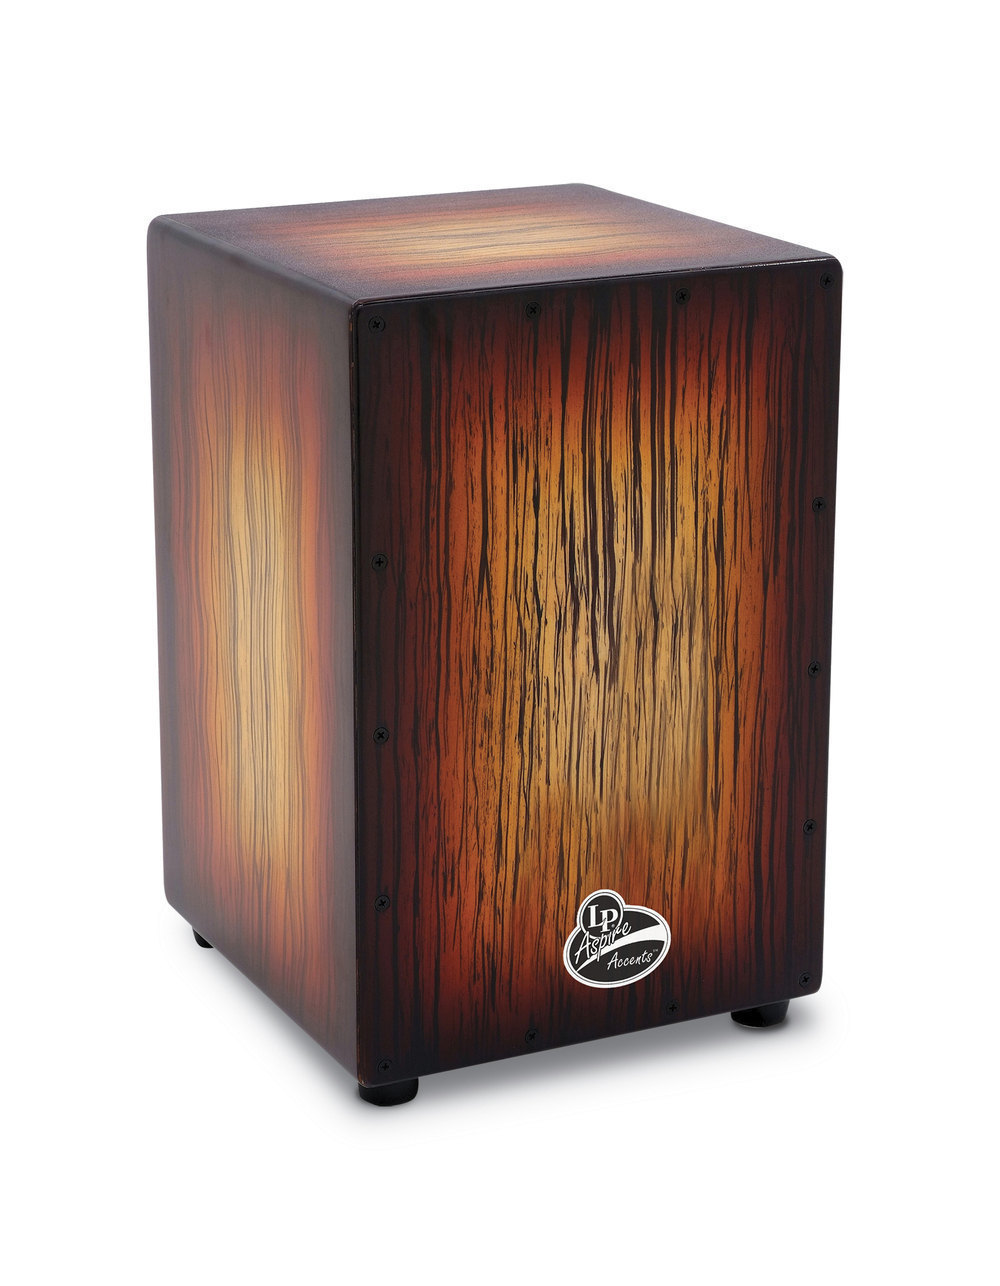 Image of   LP Aspire Accents Sunburst Streak Cajon